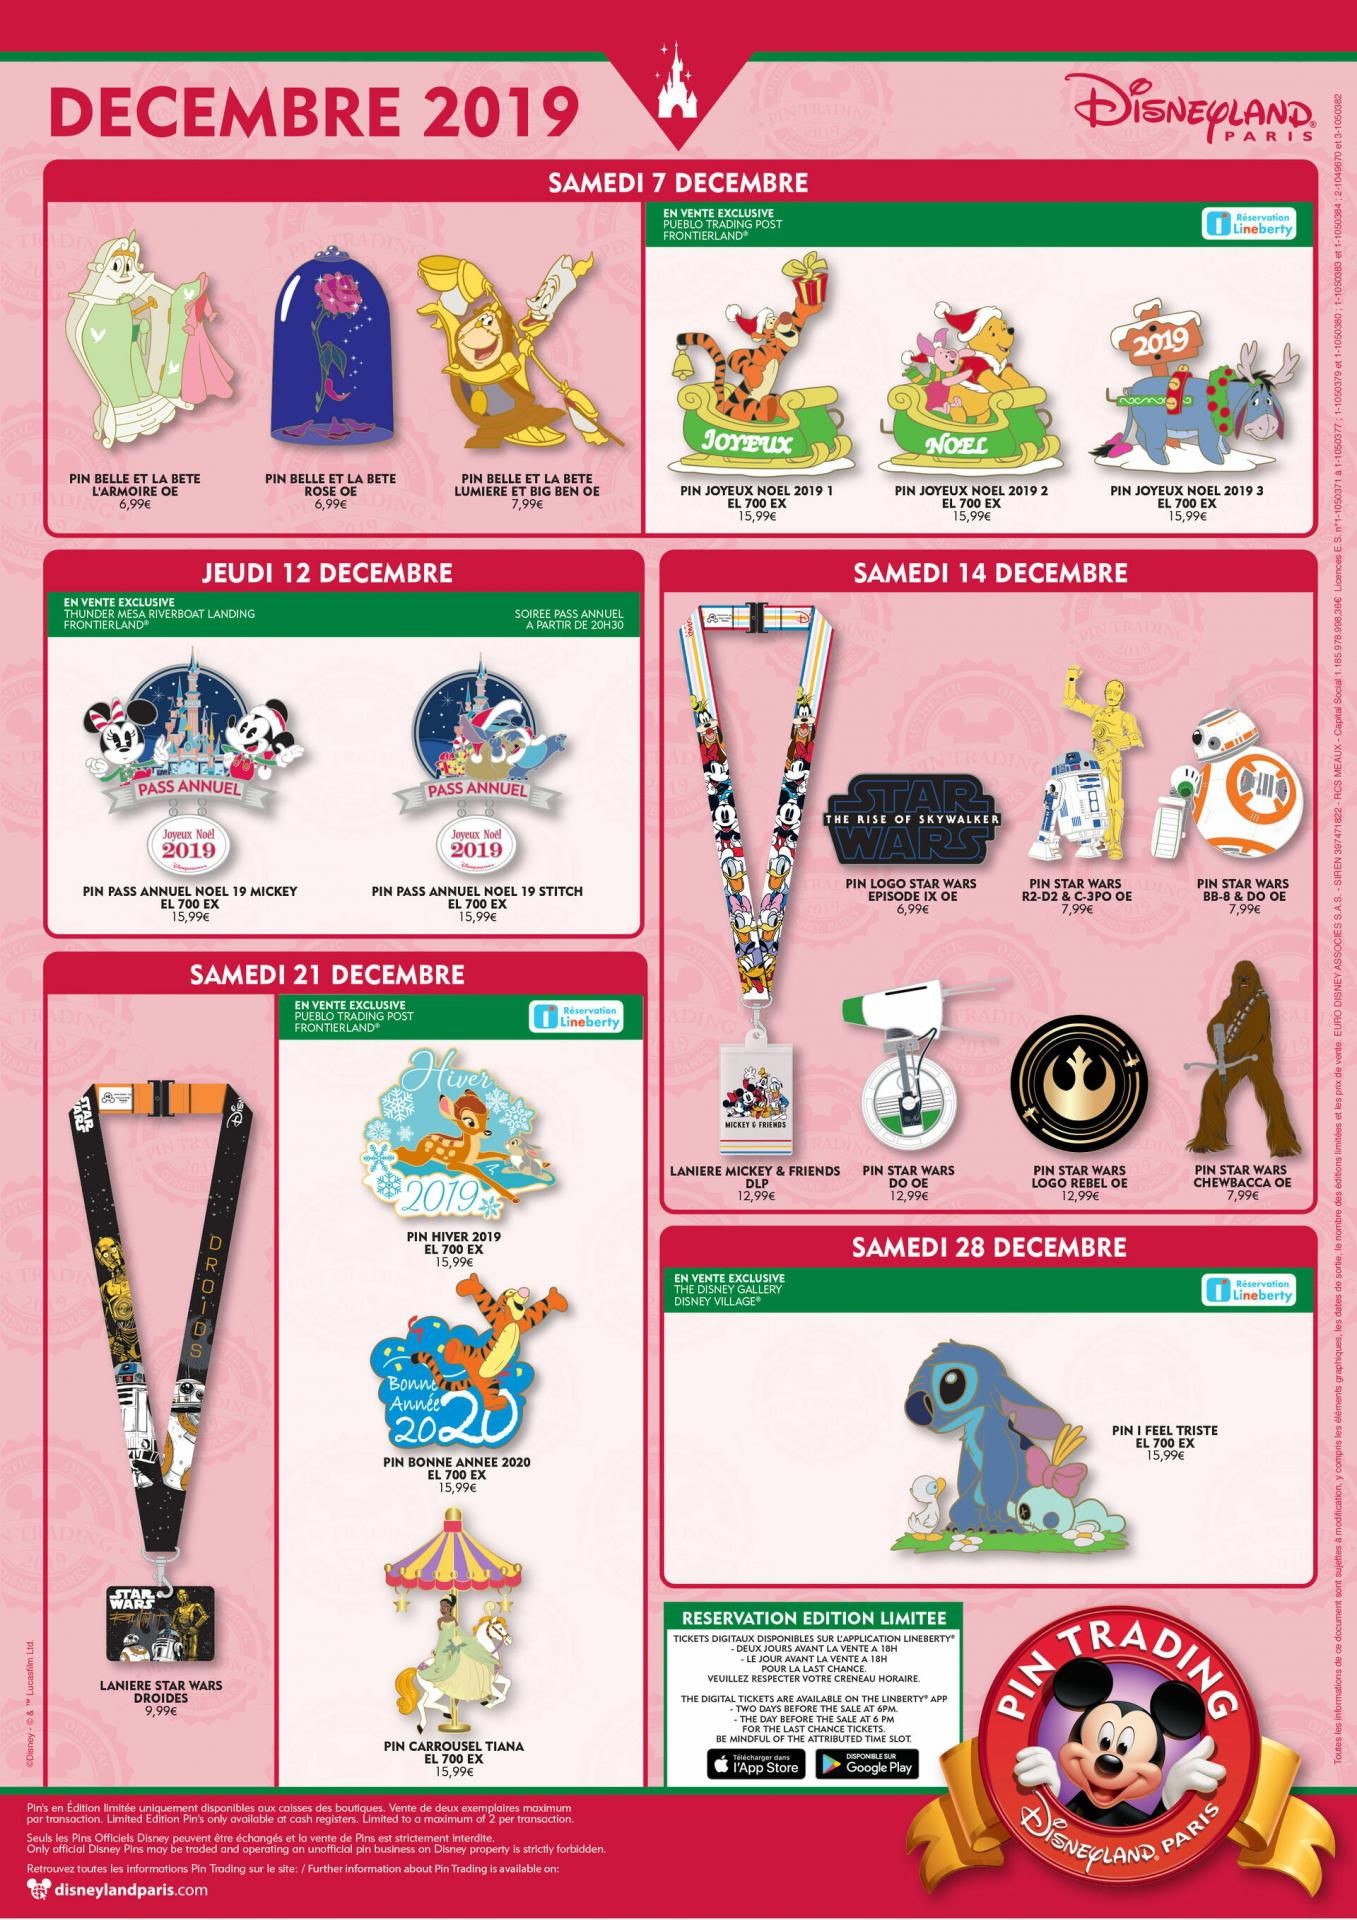 Pin tradding disneyland paris decembre 2019